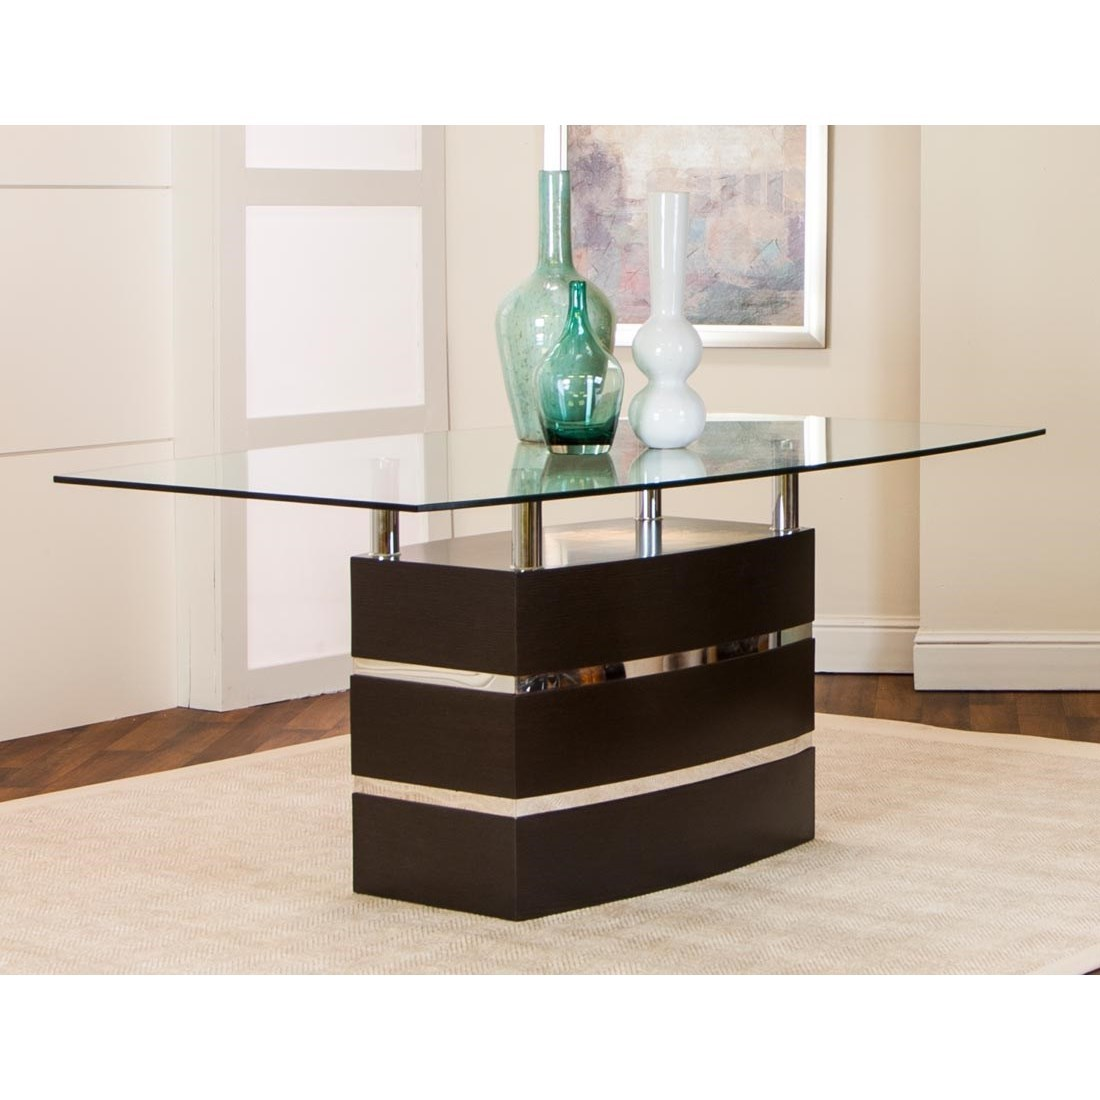 Altair Dining Table by Cramco, Inc at Lapeer Furniture & Mattress Center